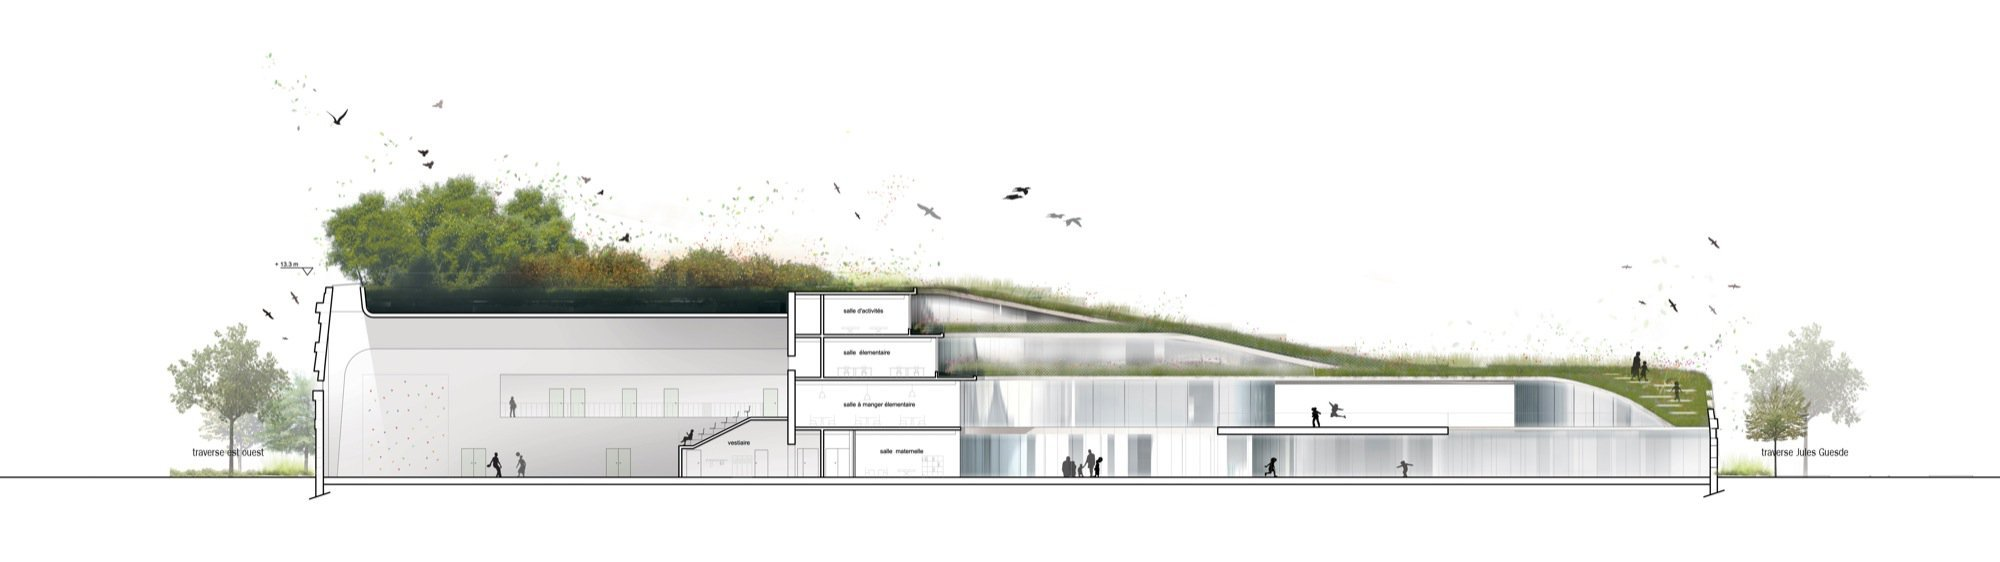 Gallery of Primary School & Sport Hall / Chartier-Dalix ...